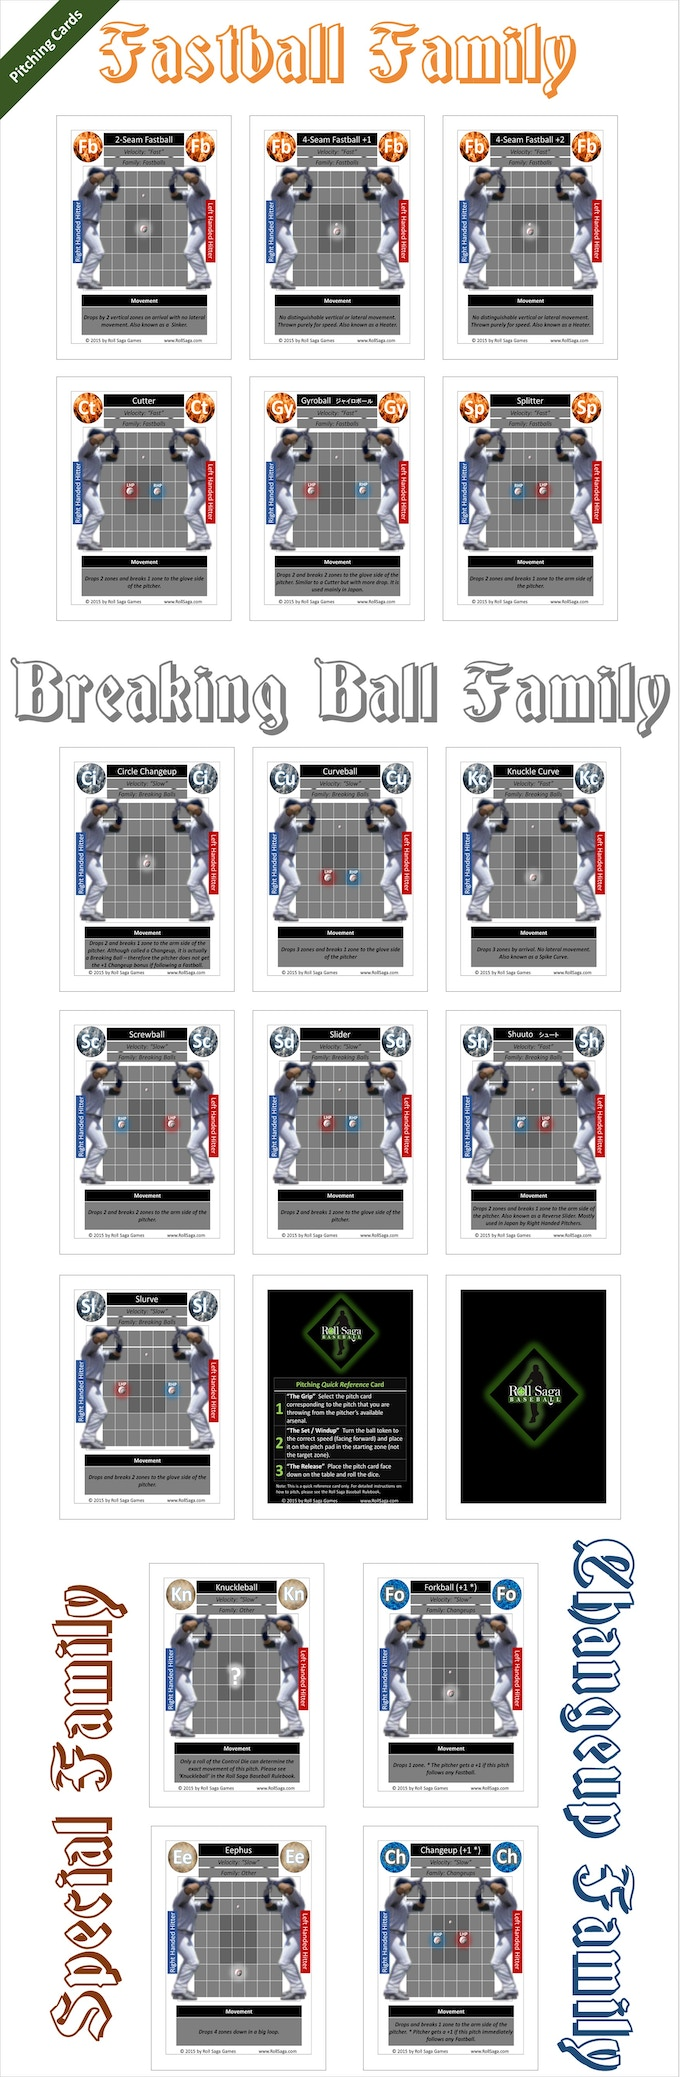 All pitch cards in Roll Saga are divided into families, each color-coded and represented by an element: Fire for Fastballs, Water for Changeups, Air for Breaking Balls, and Earth for Special Pitches (like the knuckle ball).